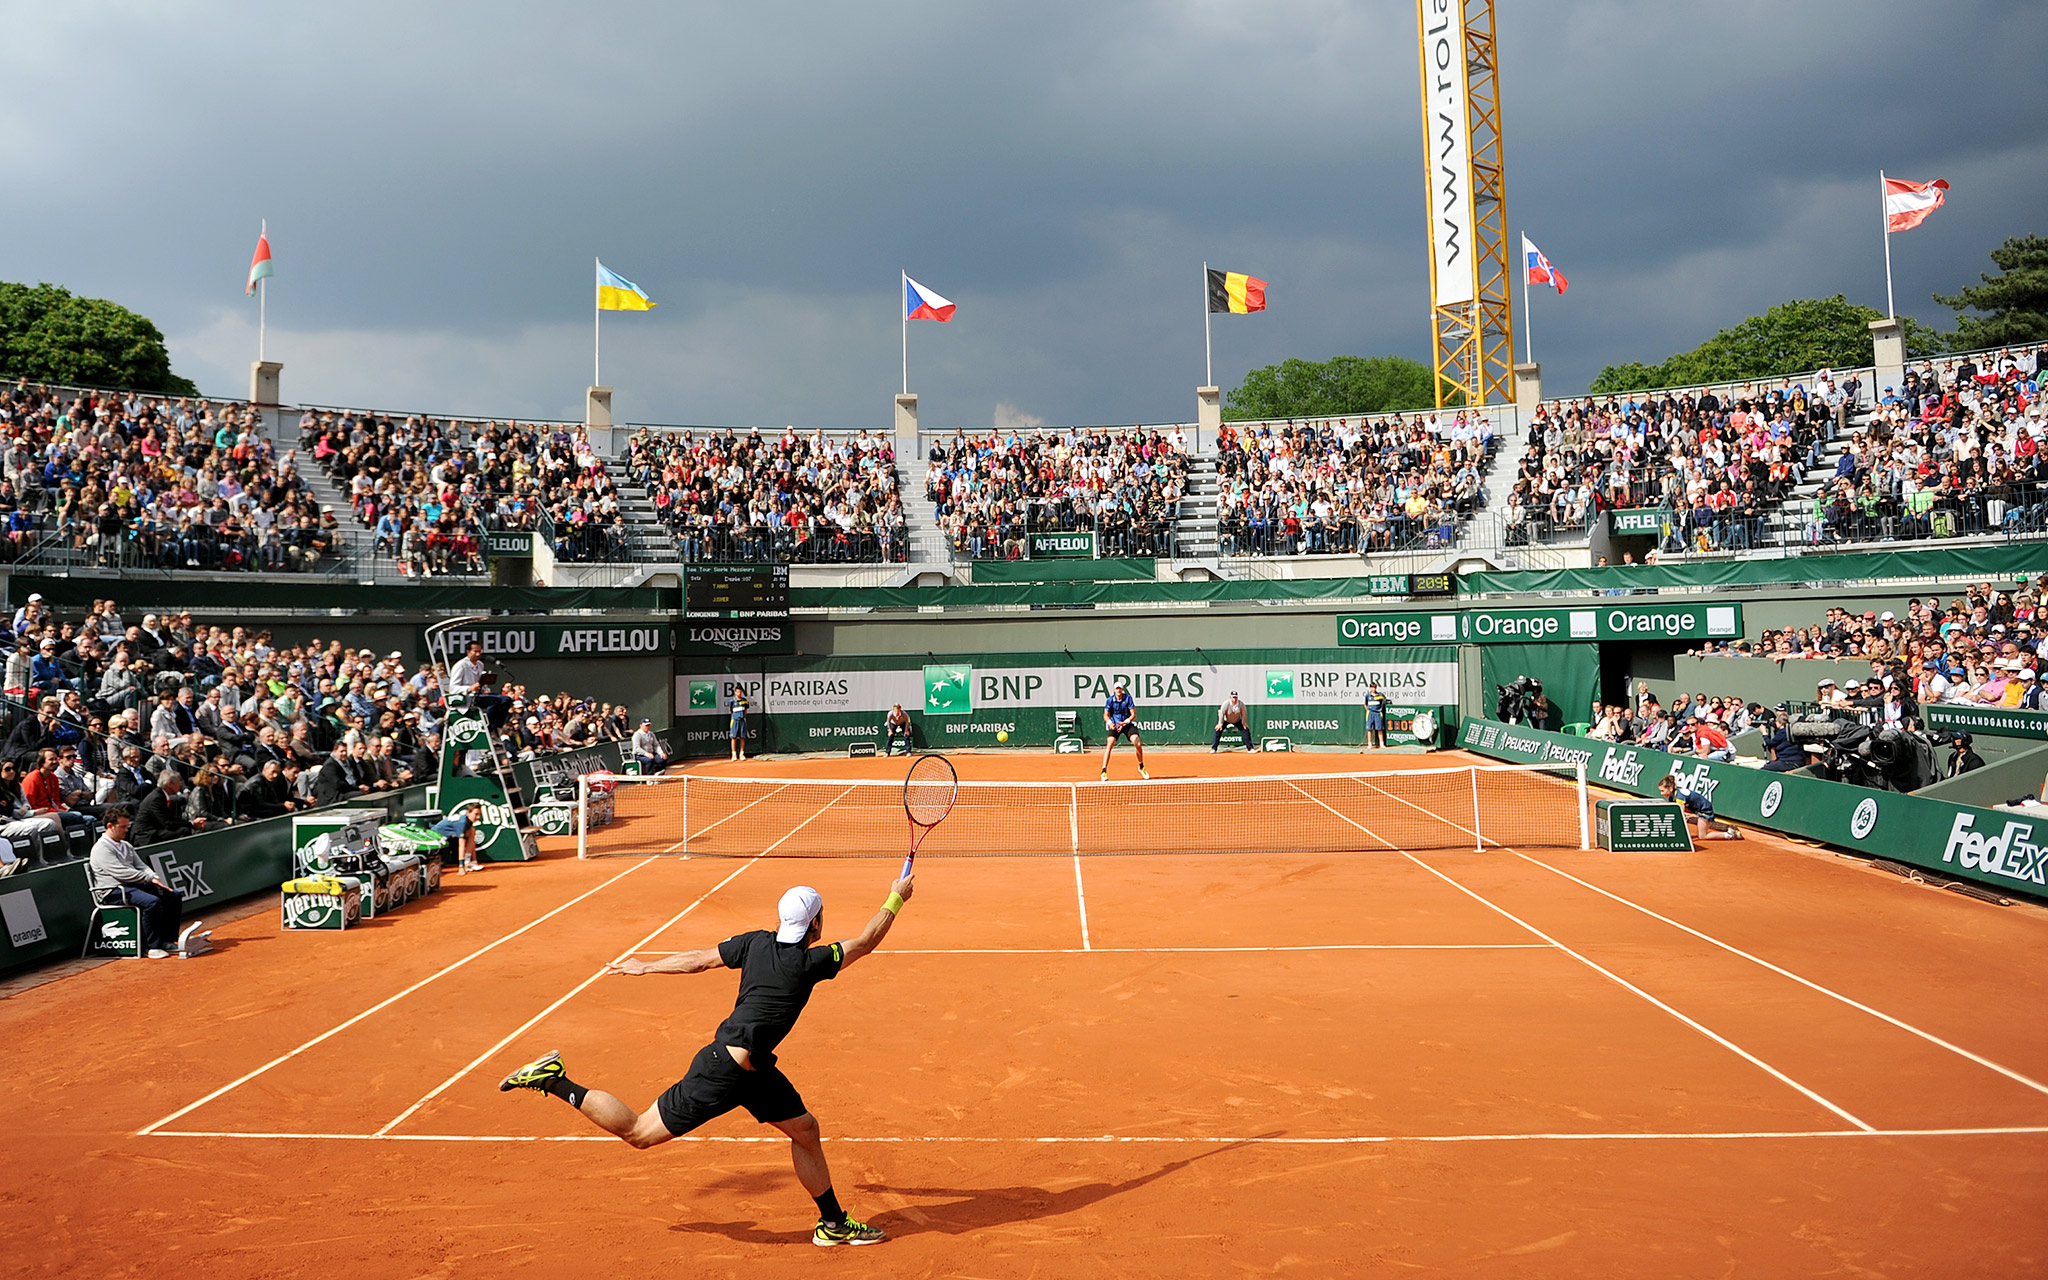 2013 French Open - ESPN